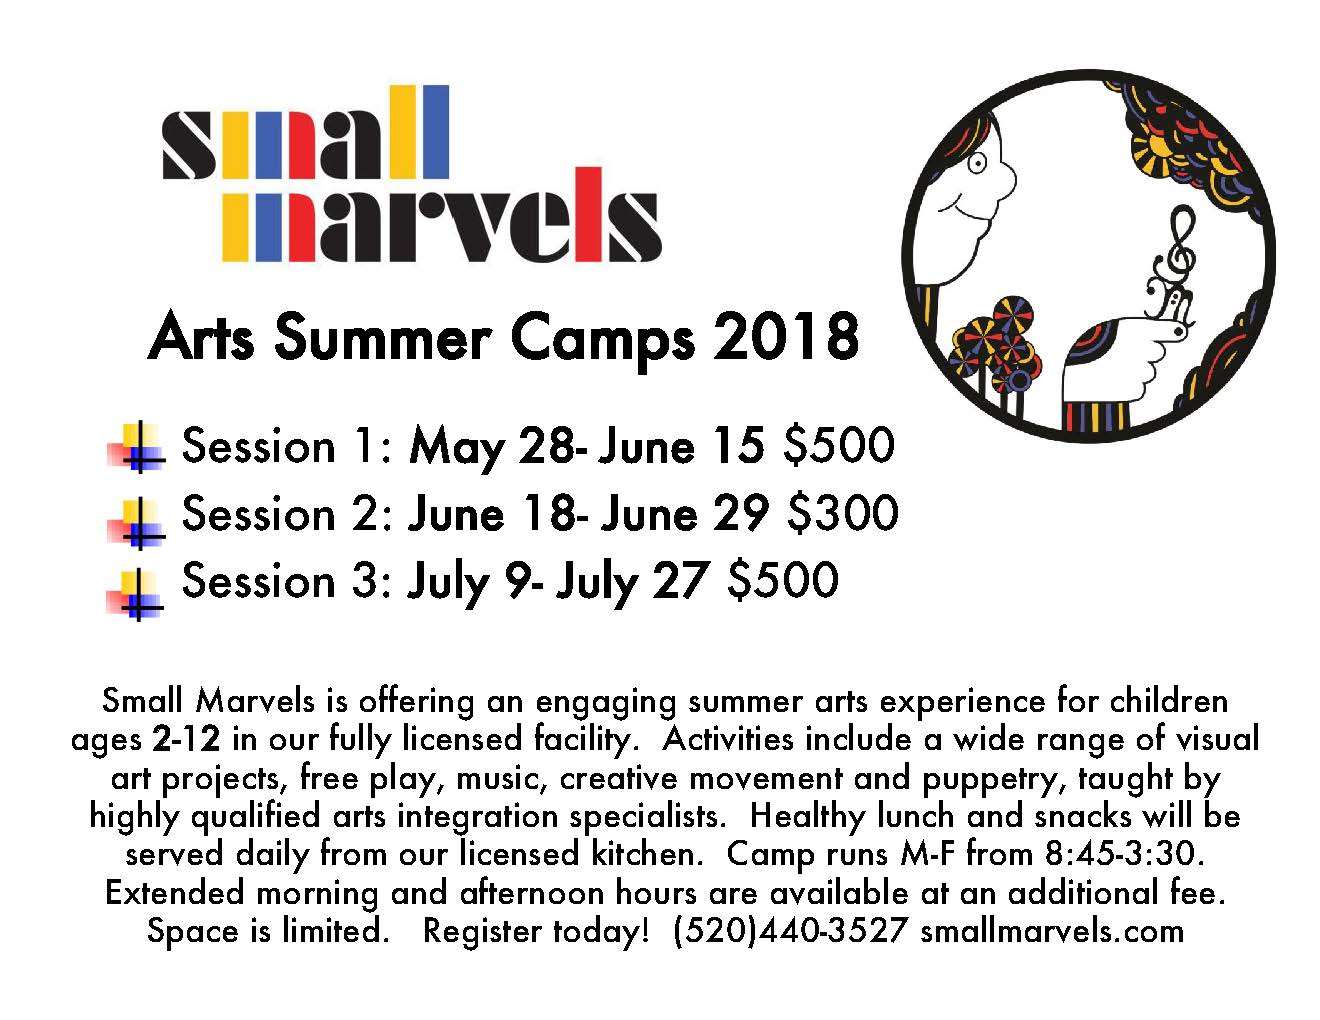 Arts Summer Camps 2018.jpg